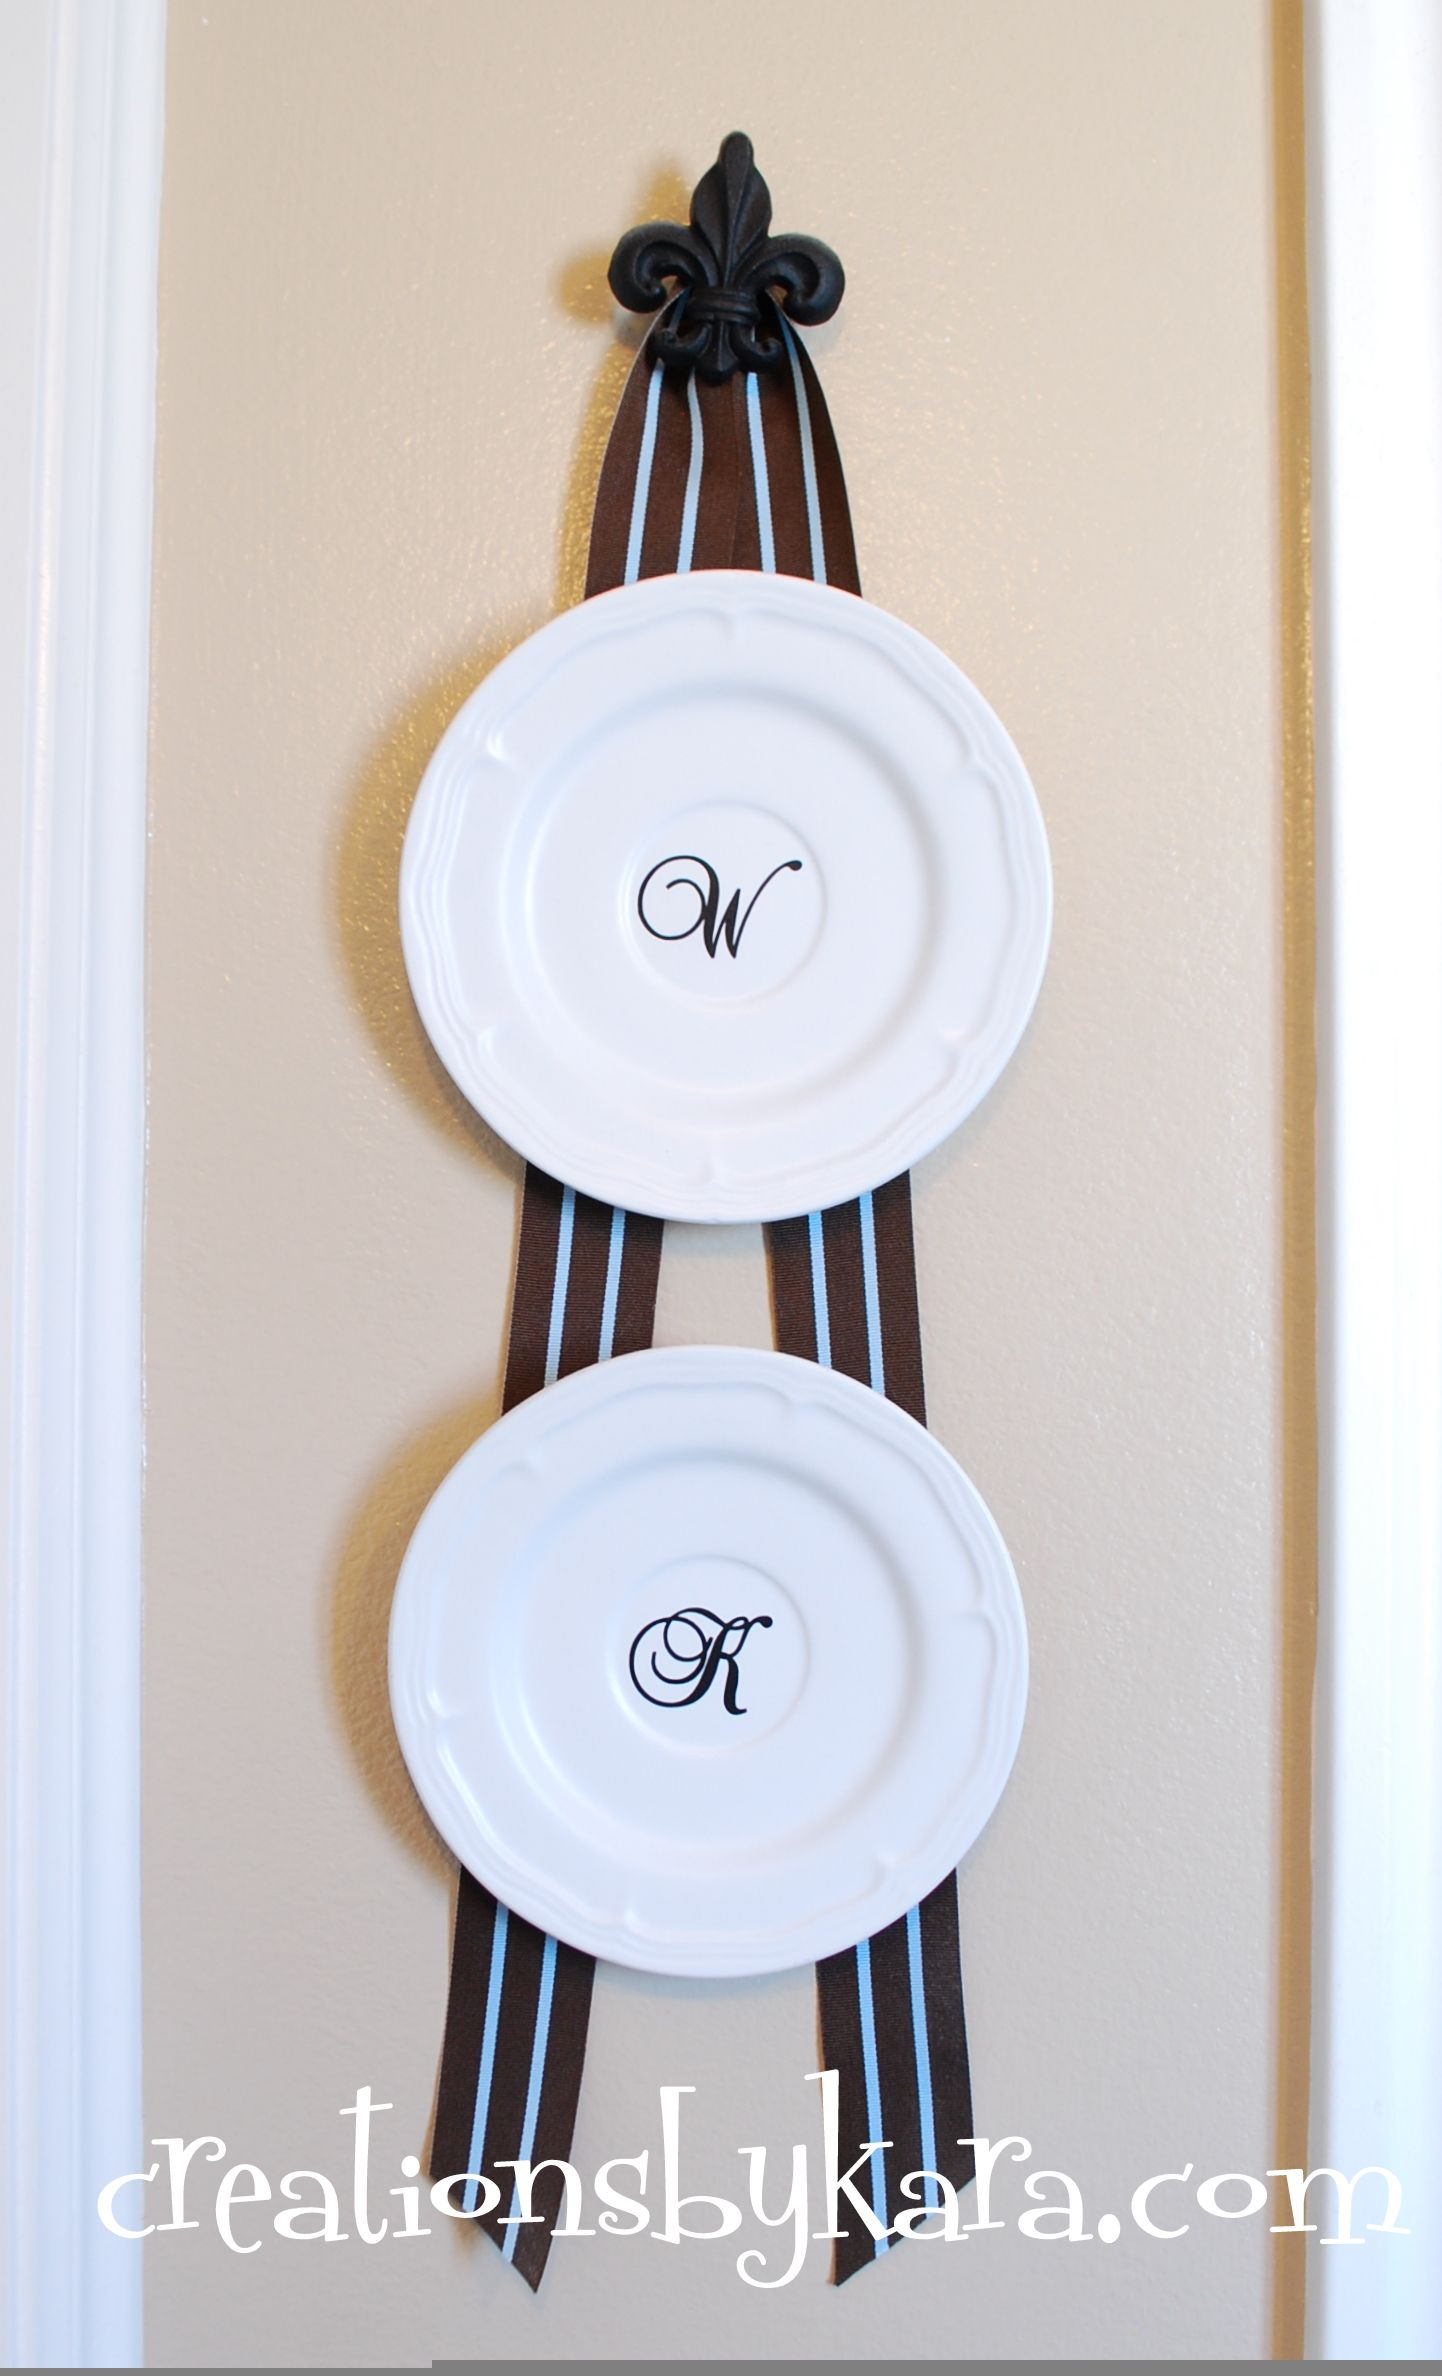 Glass Plate Hanger How To Hang Plates On The Wall Without Buying Plate Hangers A